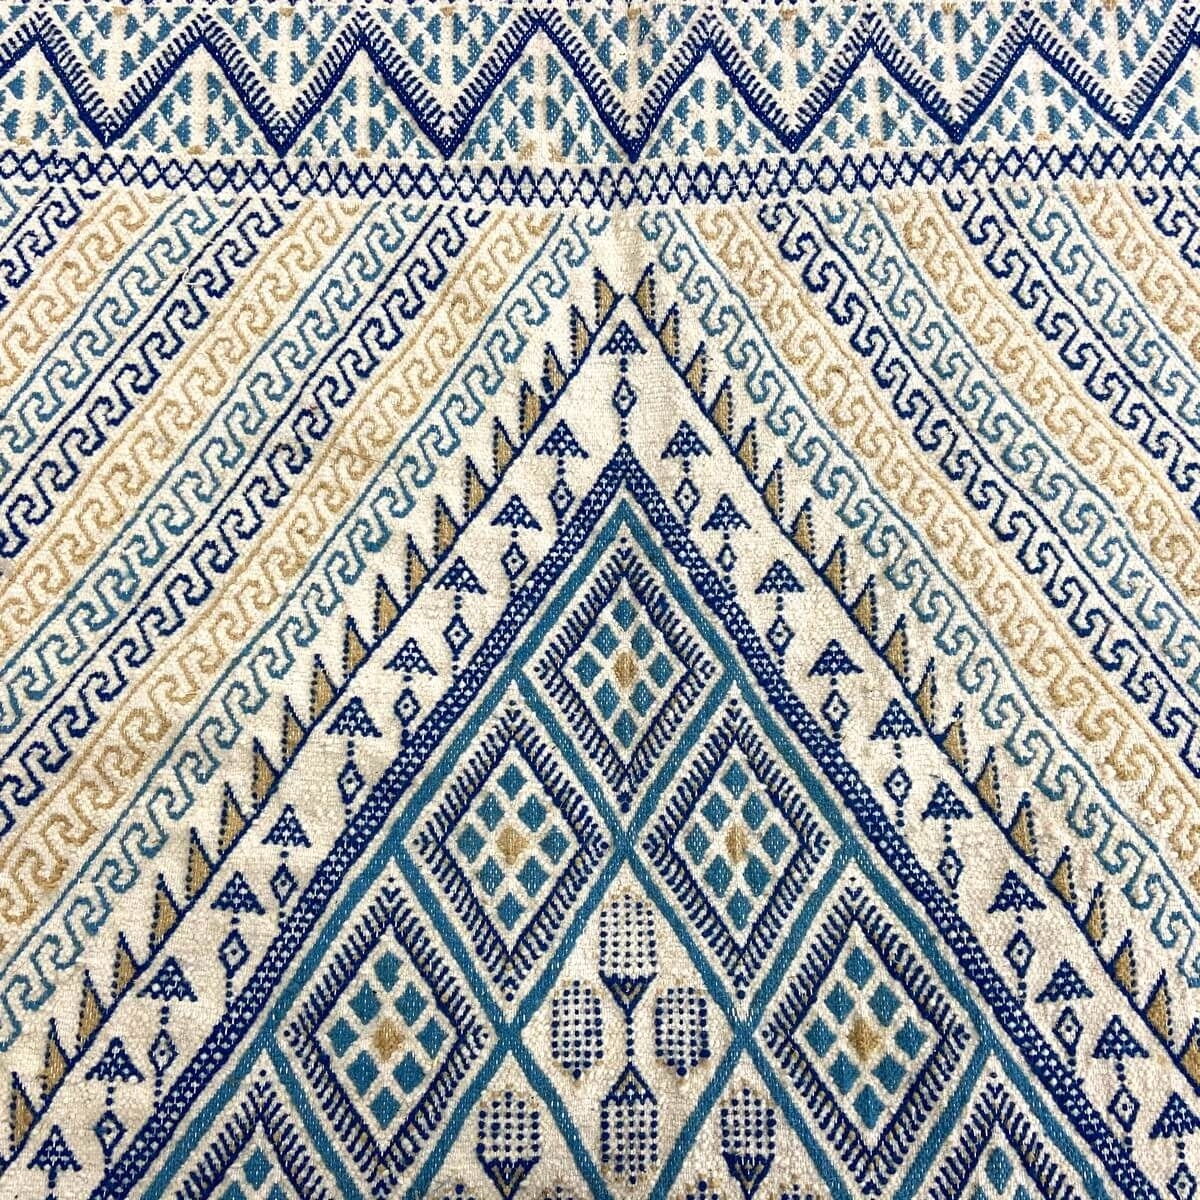 Berber carpet Large Rug Margoum Flouki 206x308 cm Blue/White (Handmade, Wool, Tunisia) Tunisian margoum rug from the city of Kai